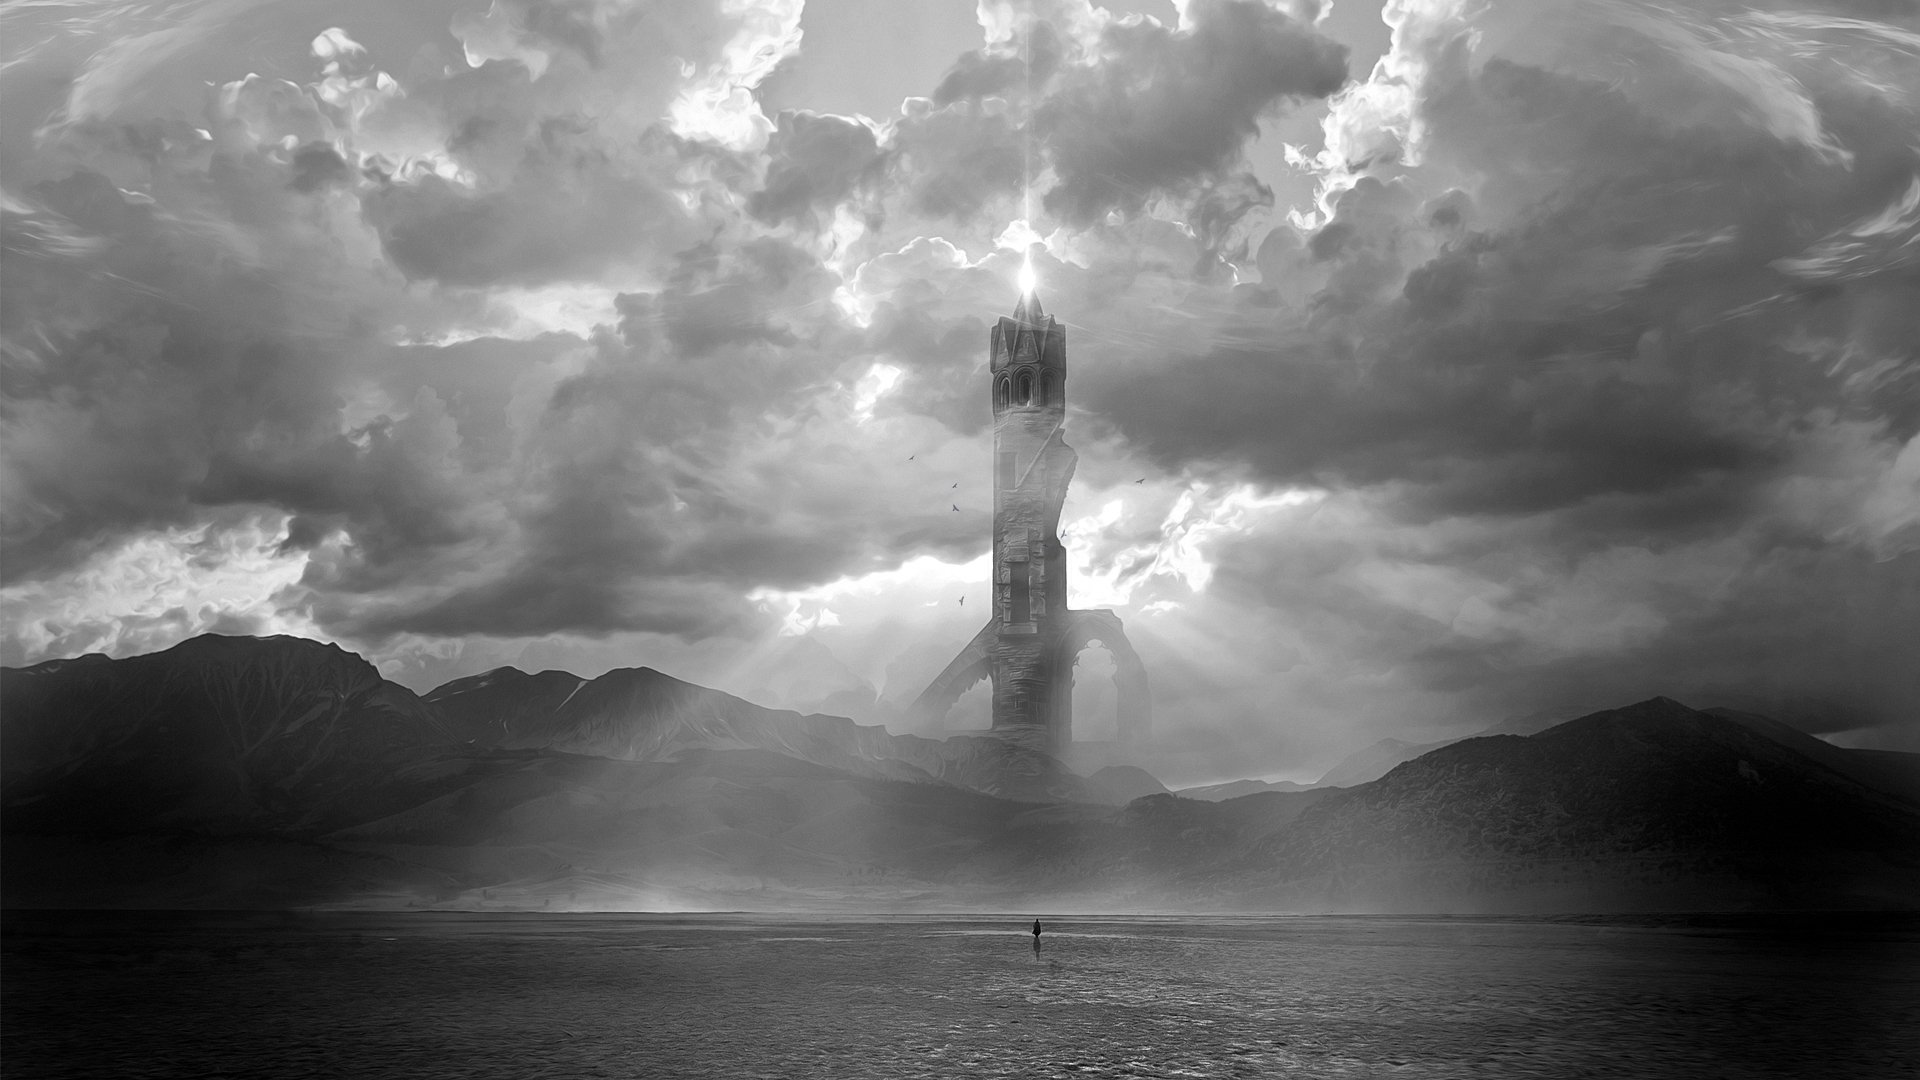 Lonely Tower In Desert Papel De Parede Hd Plano De Fundo